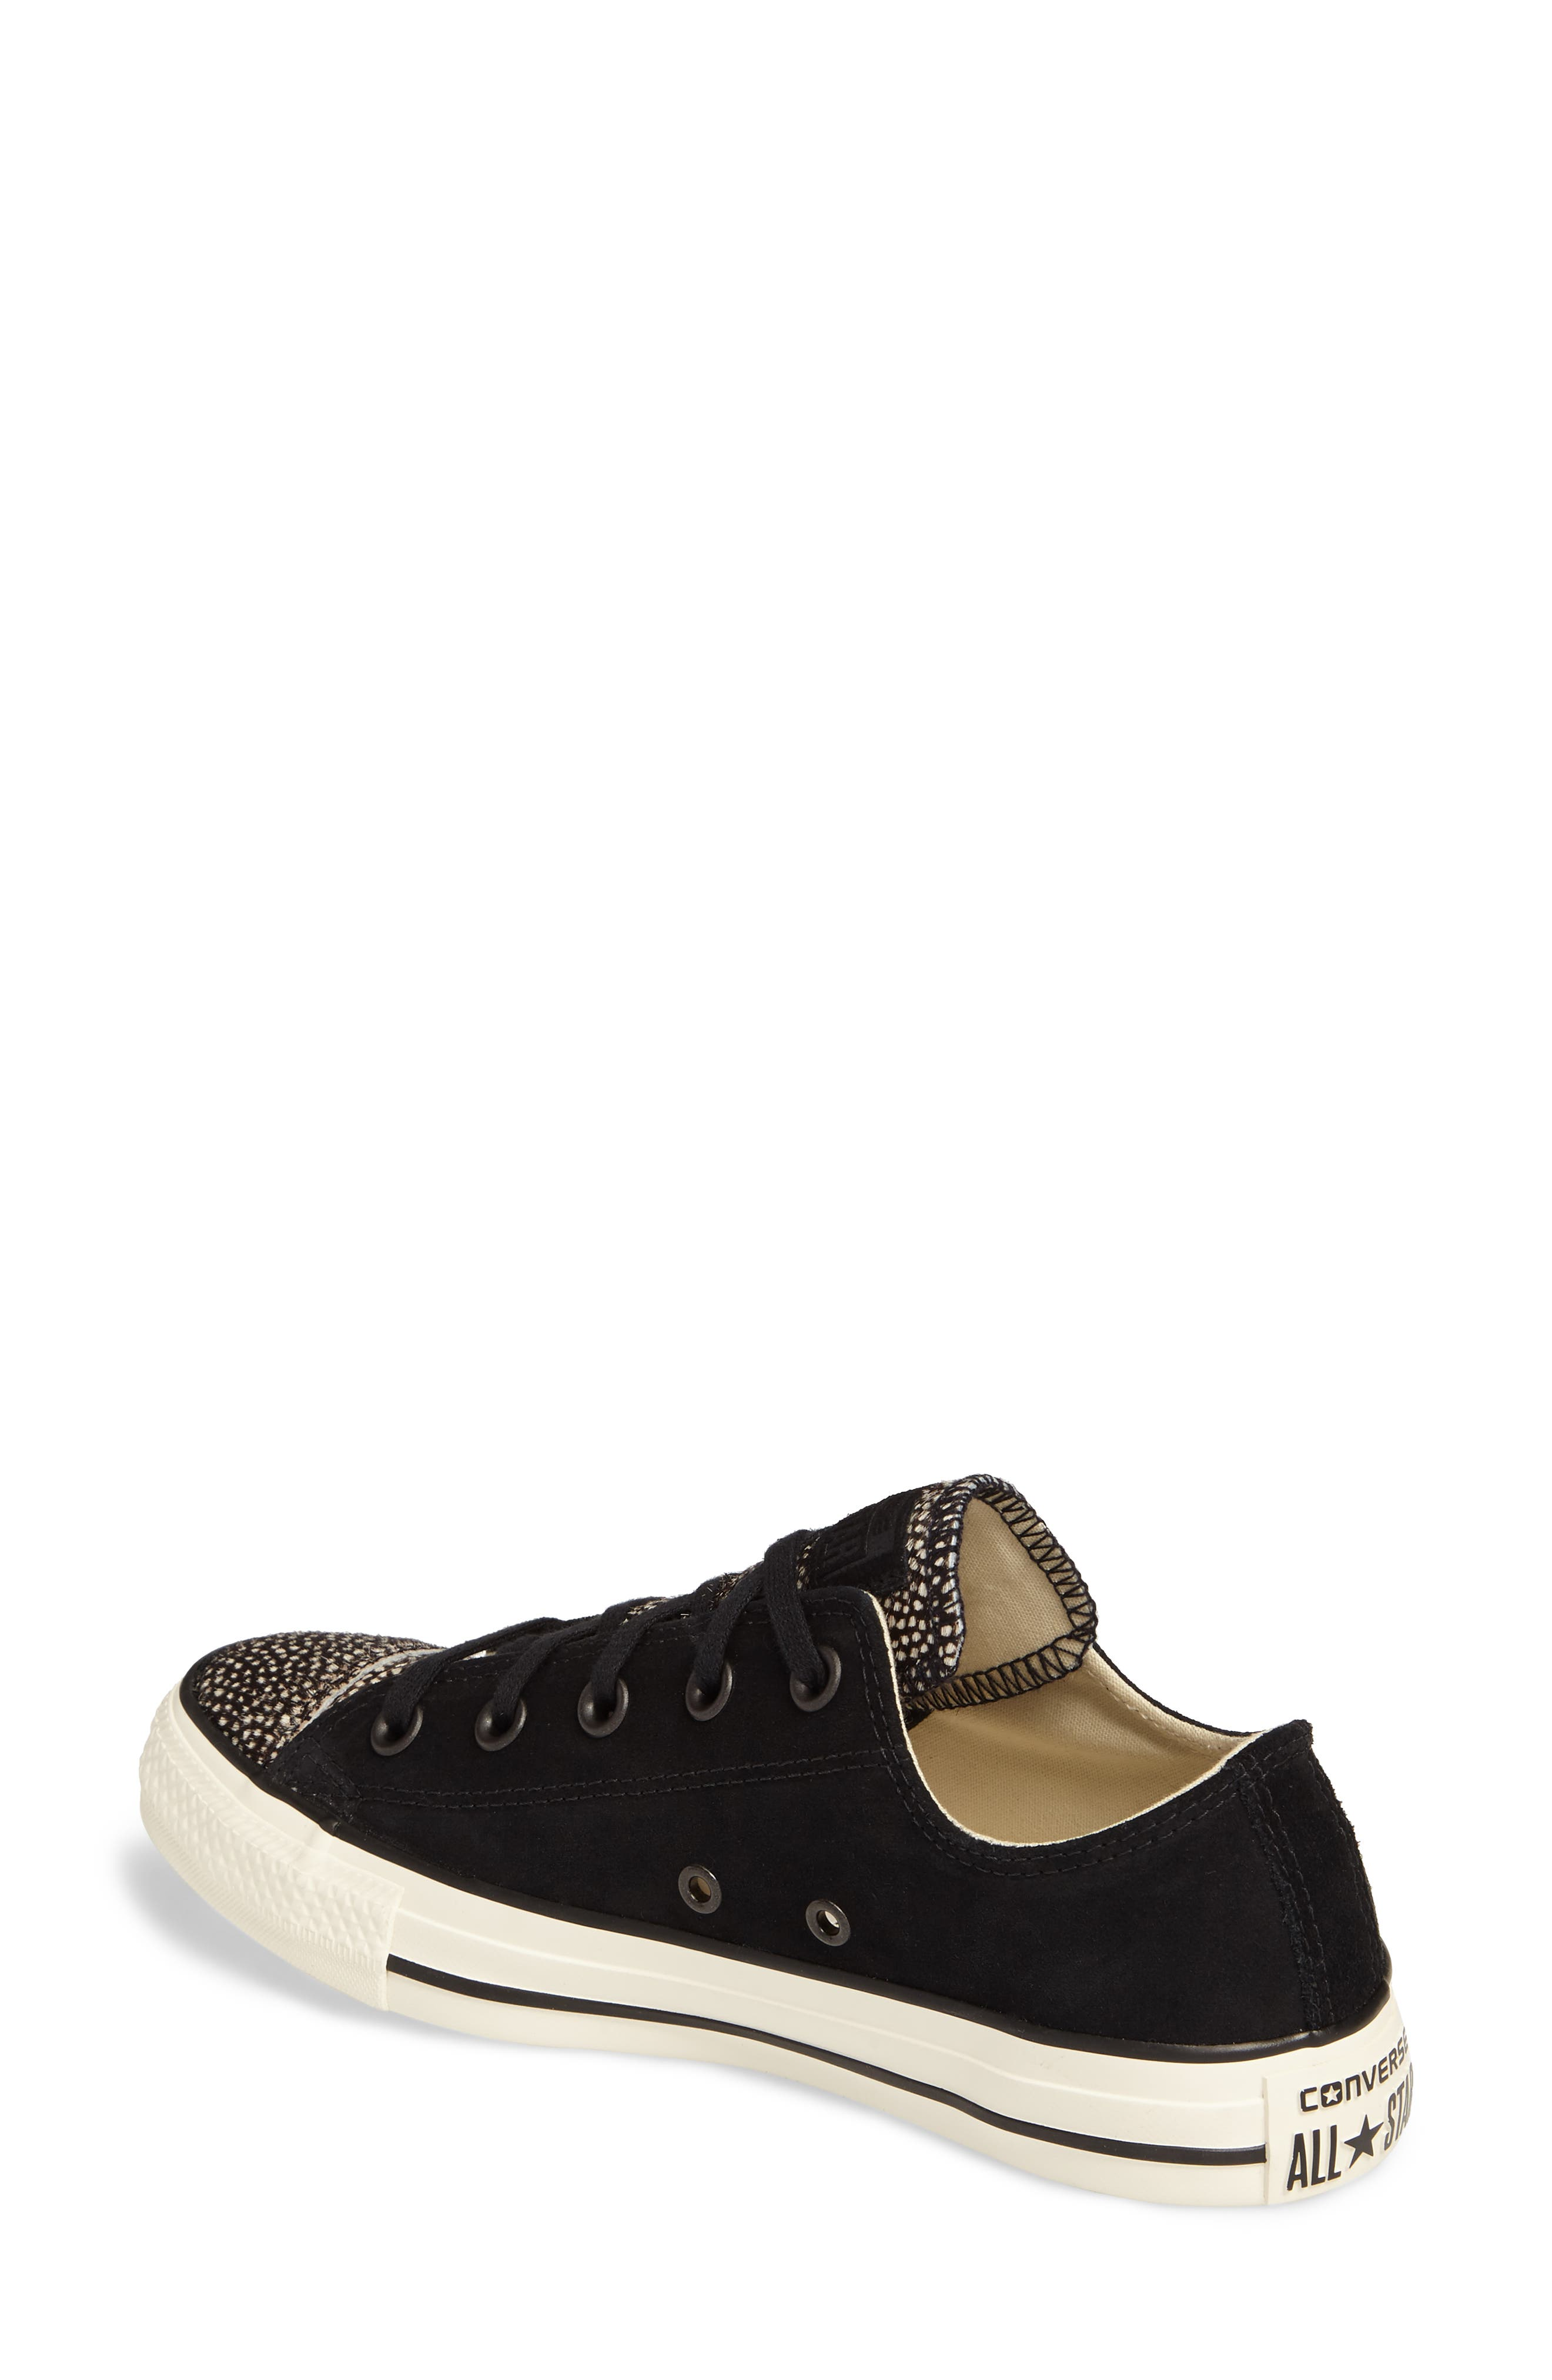 Chuck Taylor<sup>®</sup> All Star<sup>®</sup> Ox Genuine Calf Hair Sneaker,                             Alternate thumbnail 2, color,                             Black